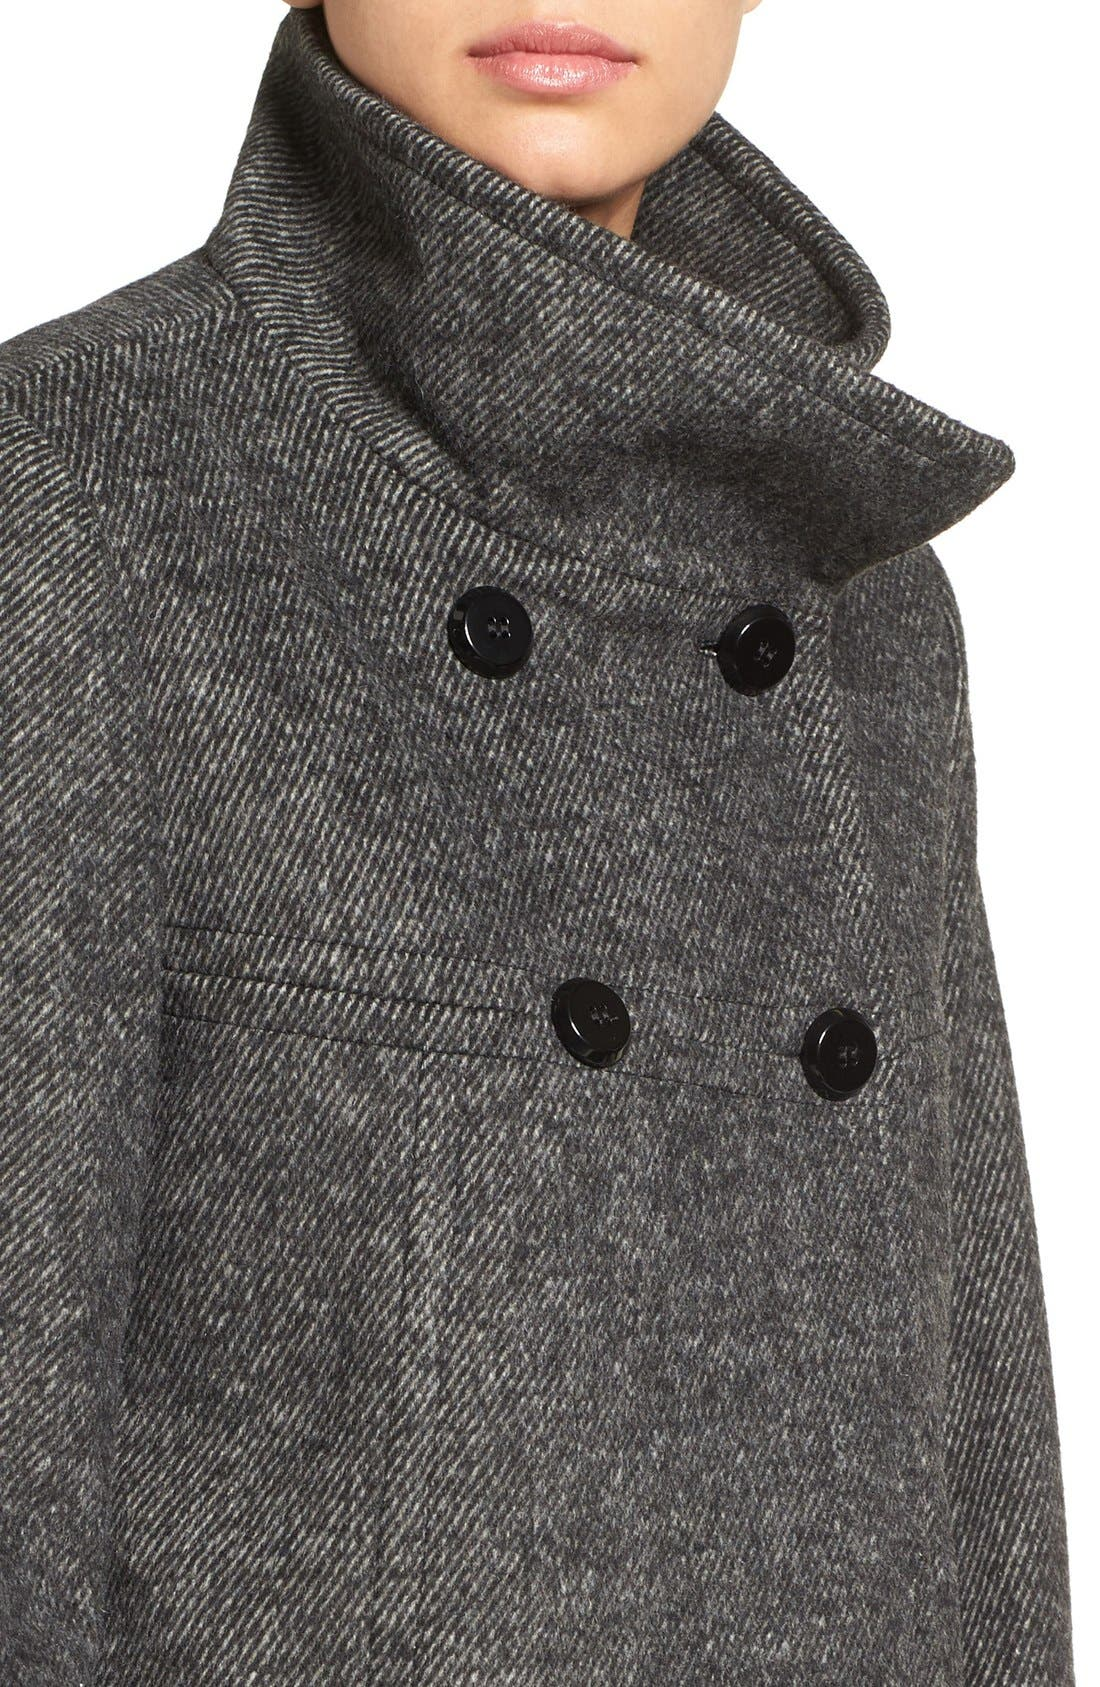 Double Breasted Swing Coat,                             Alternate thumbnail 4, color,                             015